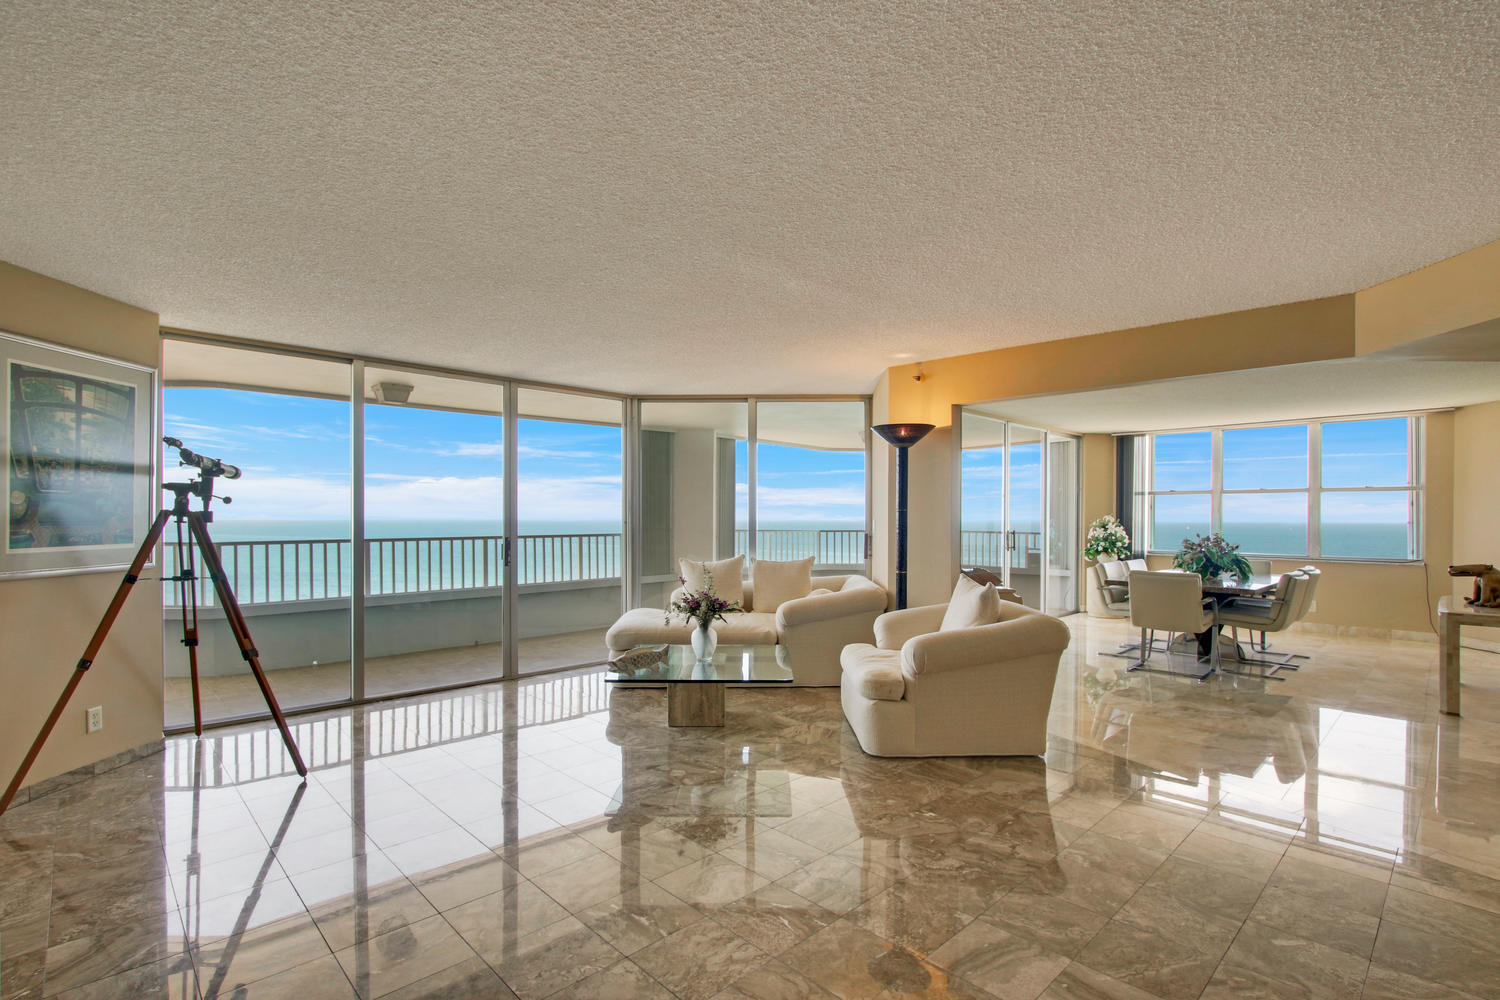 Home for sale in Corniche Singer Island Florida